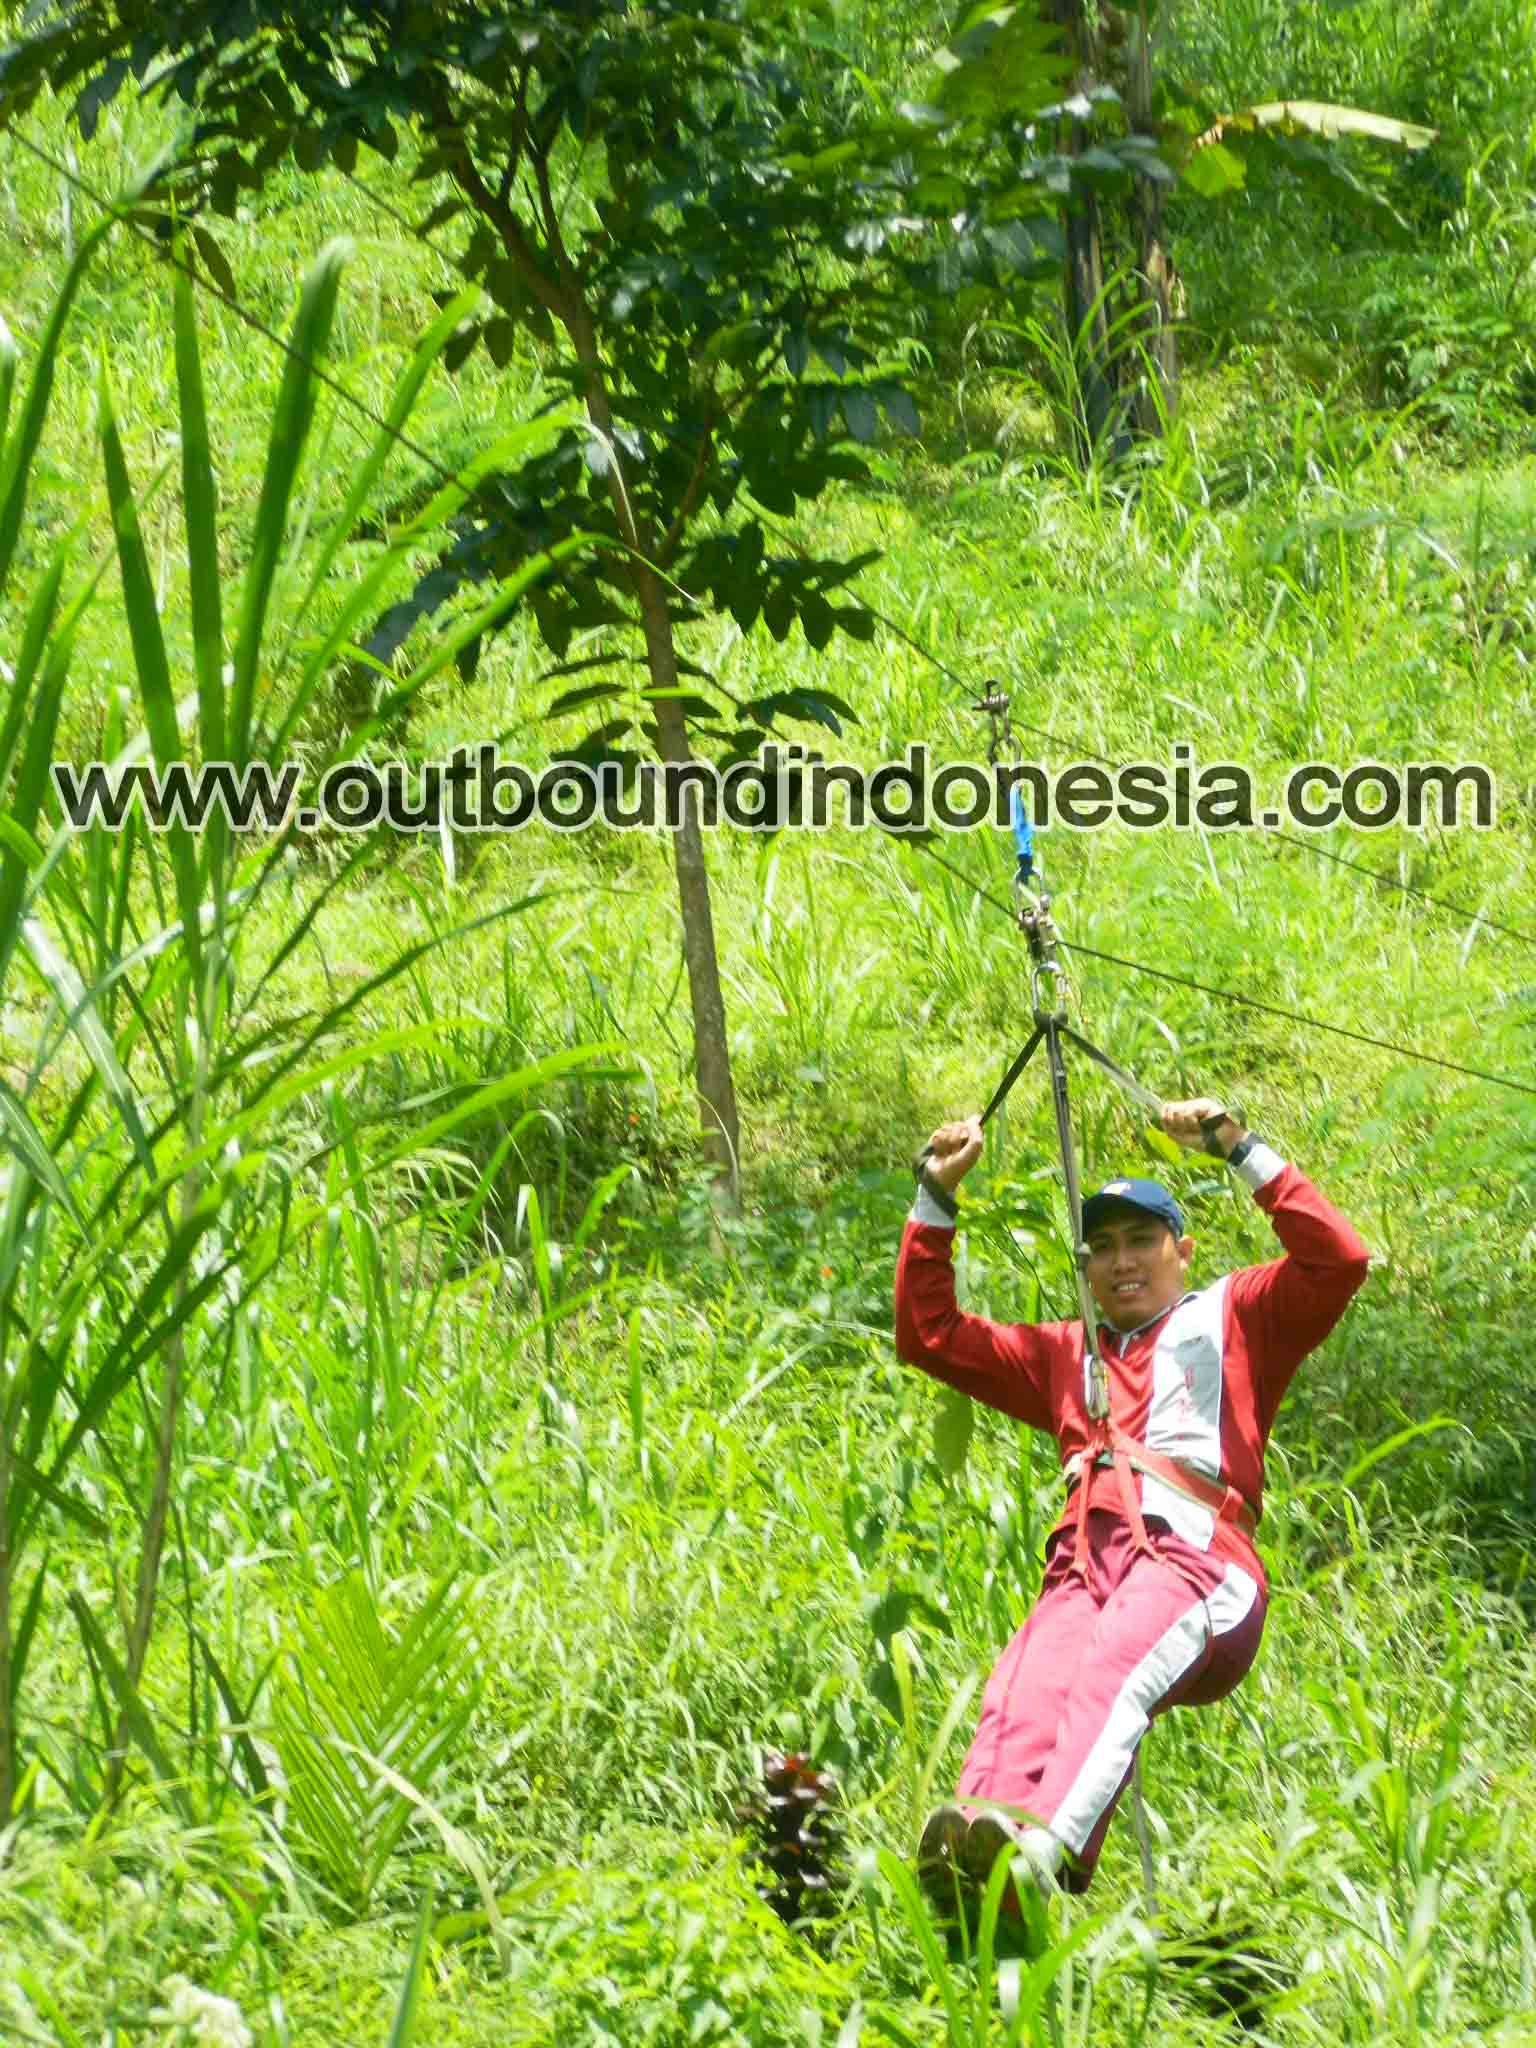 flying fox di malang, http://www.outboundindonesia.com, 081 287 000 995